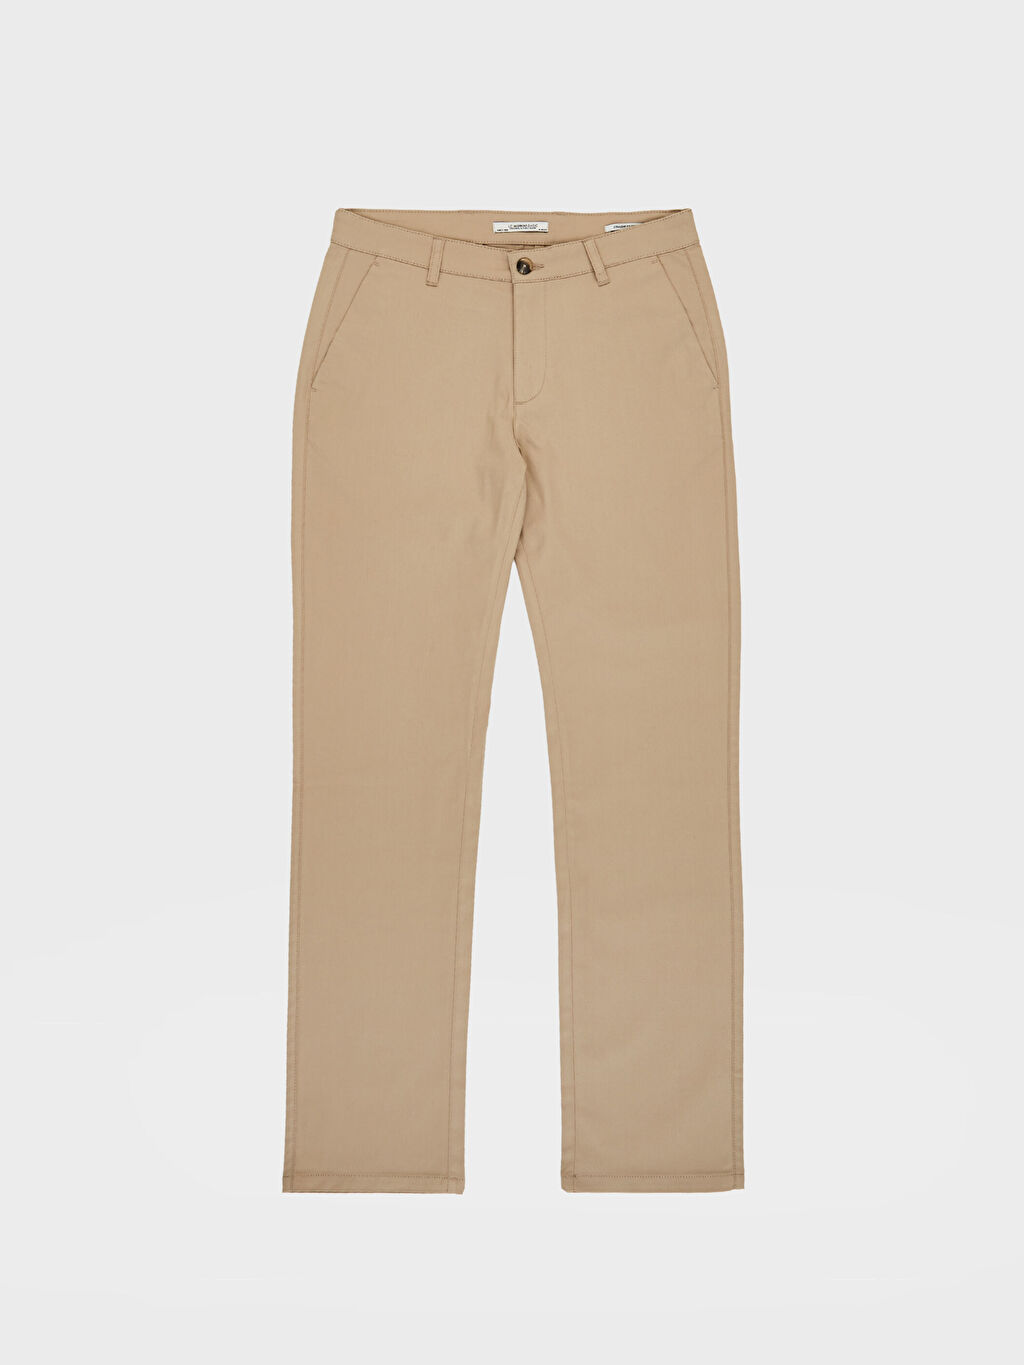 Bej Normal Kalıp Gabardin Chino Pantolon